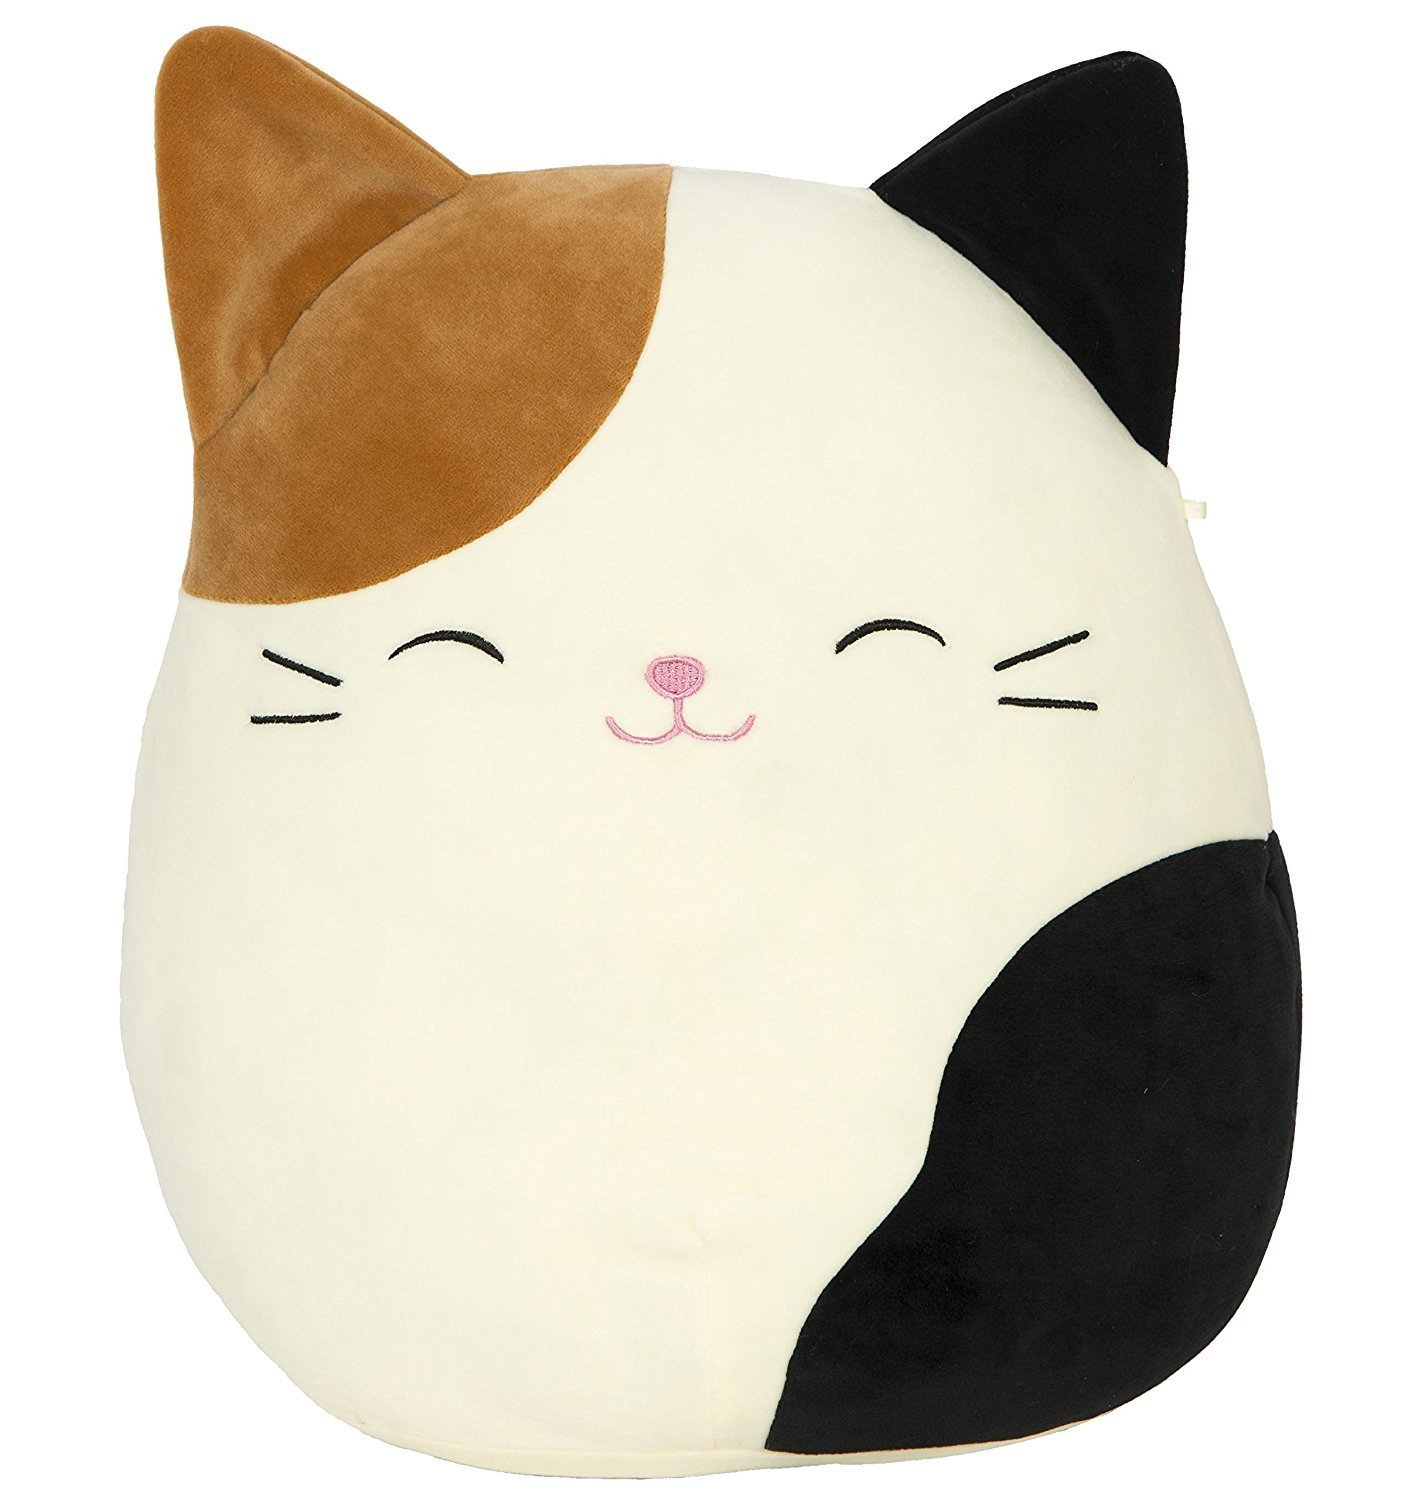 Kellytoy Squishmallow 8'' Cam The Cat Super Soft Plush Toy Pillow Pet Animal Pillow Pal Buddy